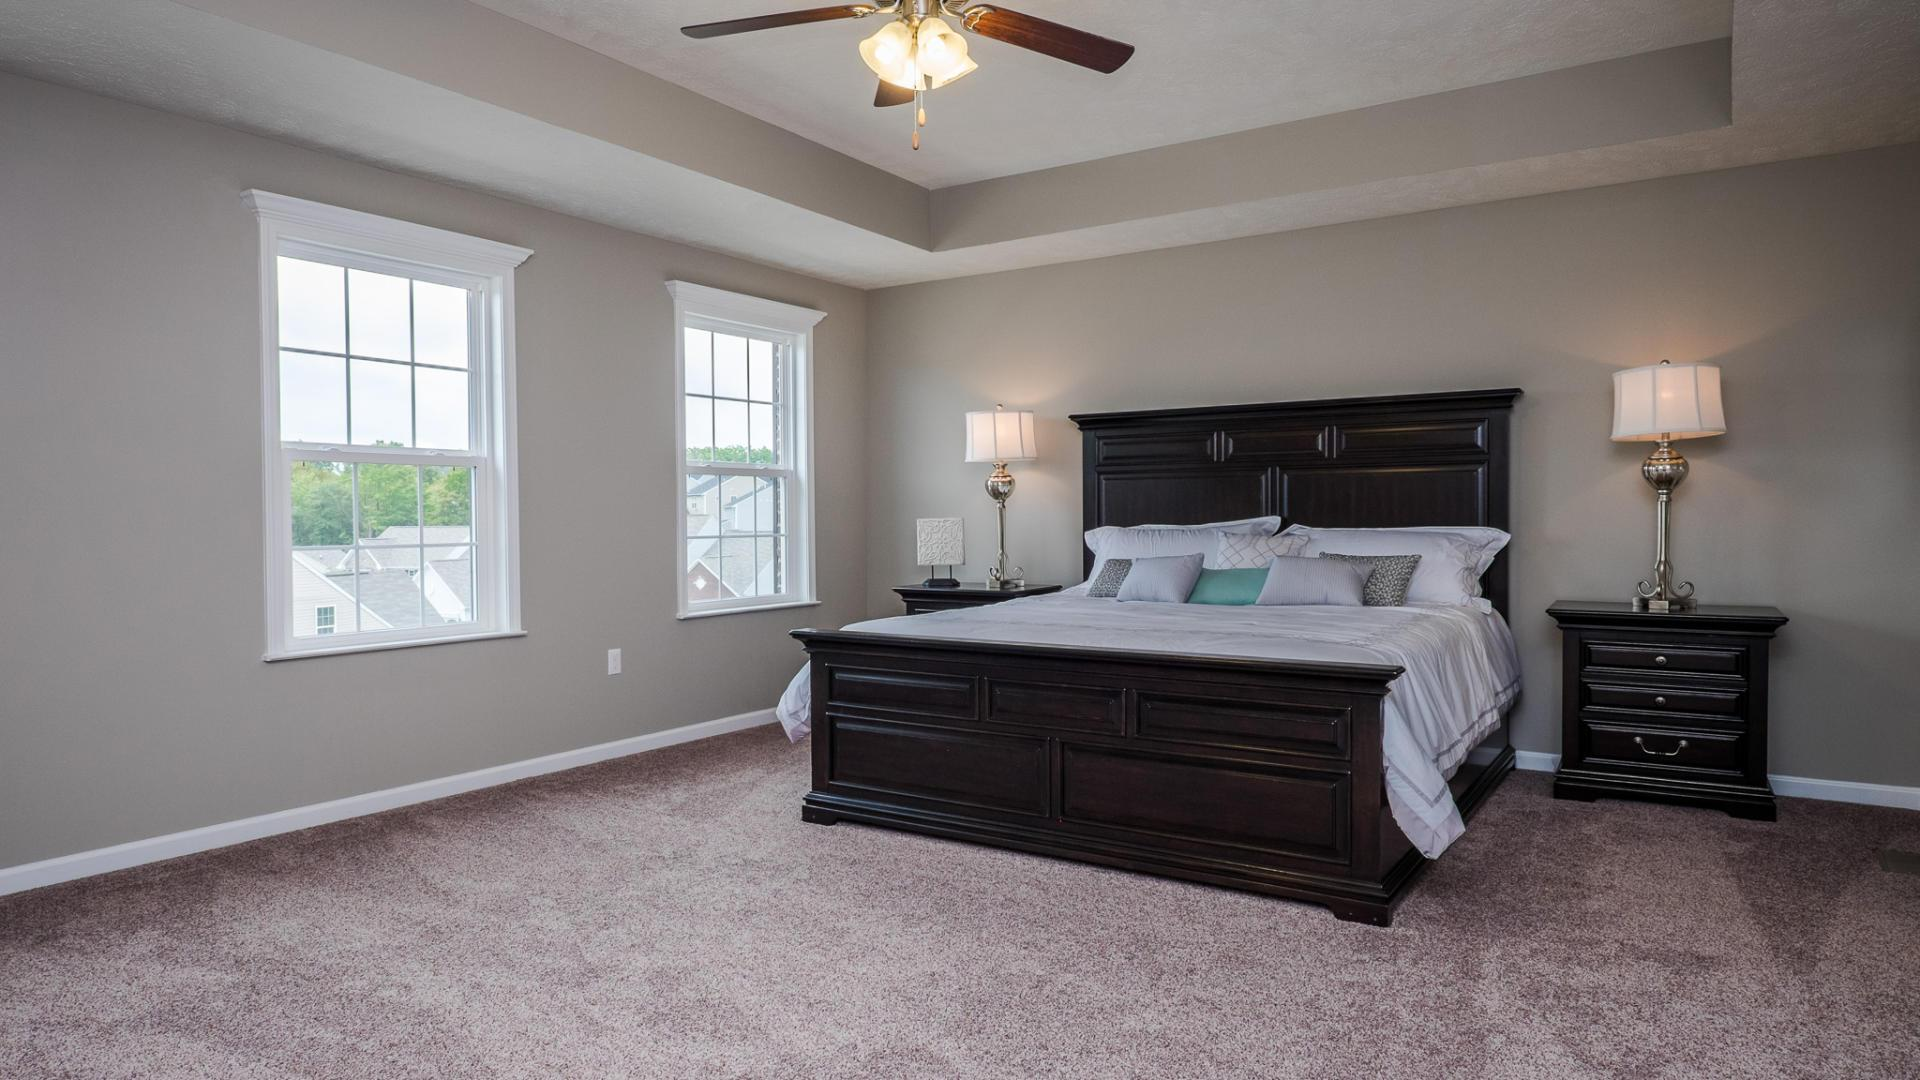 Bedroom featured in the Tucson By Maronda Homes in Pittsburgh, PA